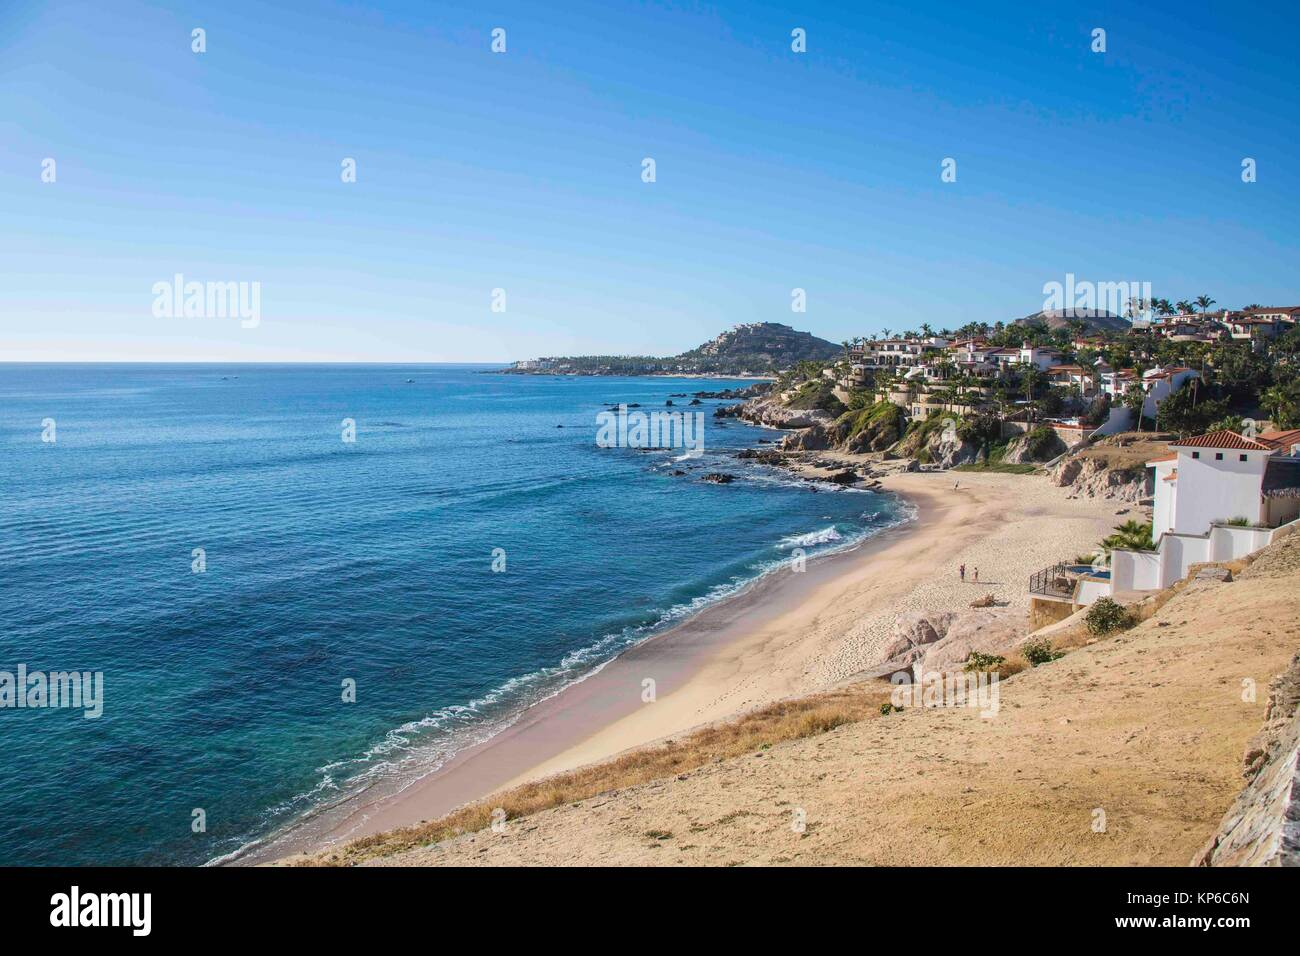 Empty Beach In Cabos San Lucas Baja California Mexico Ocean And Mountains On